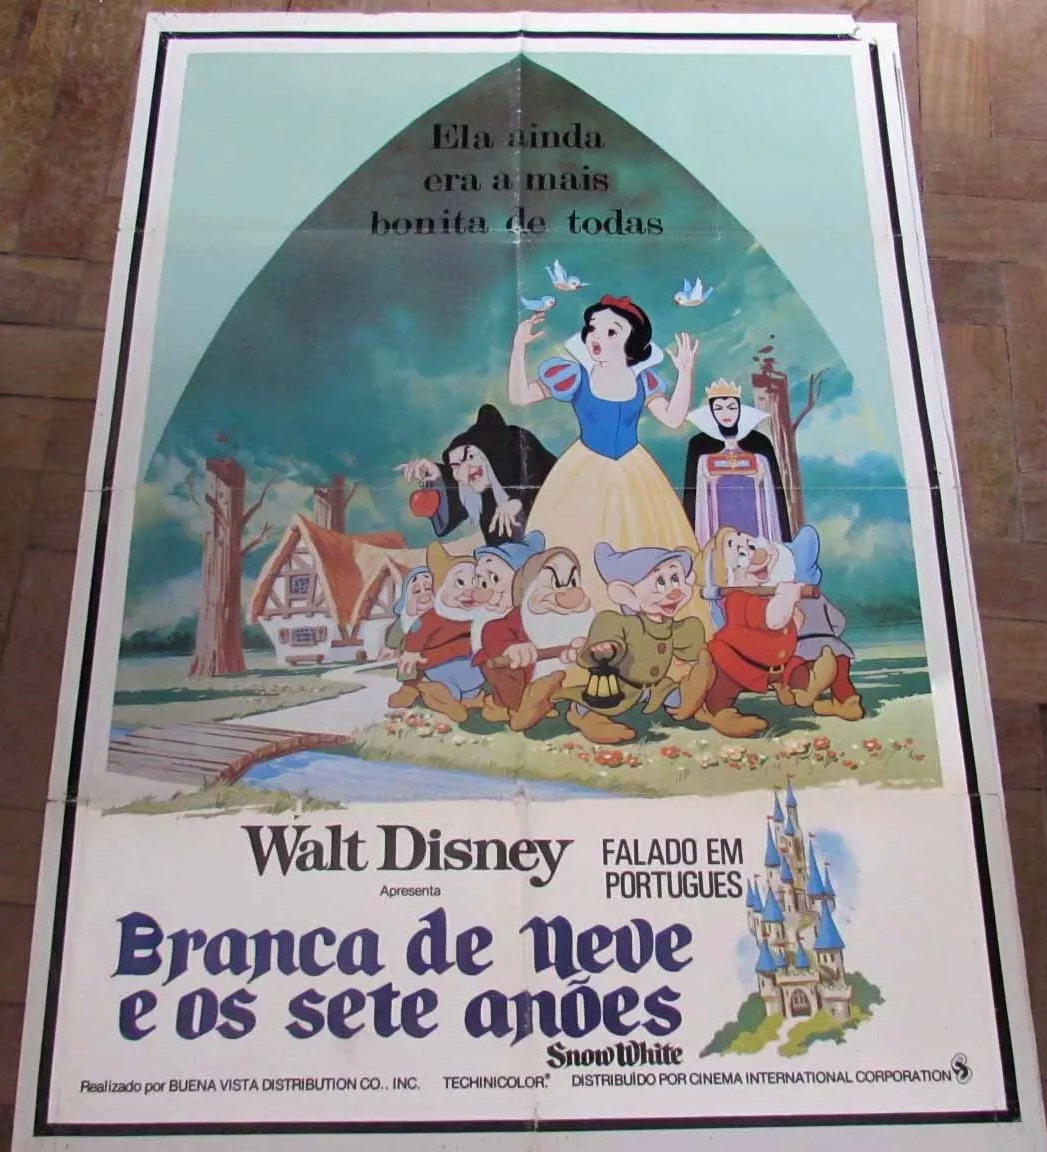 Filmic Light - Snow White Archive: 1977